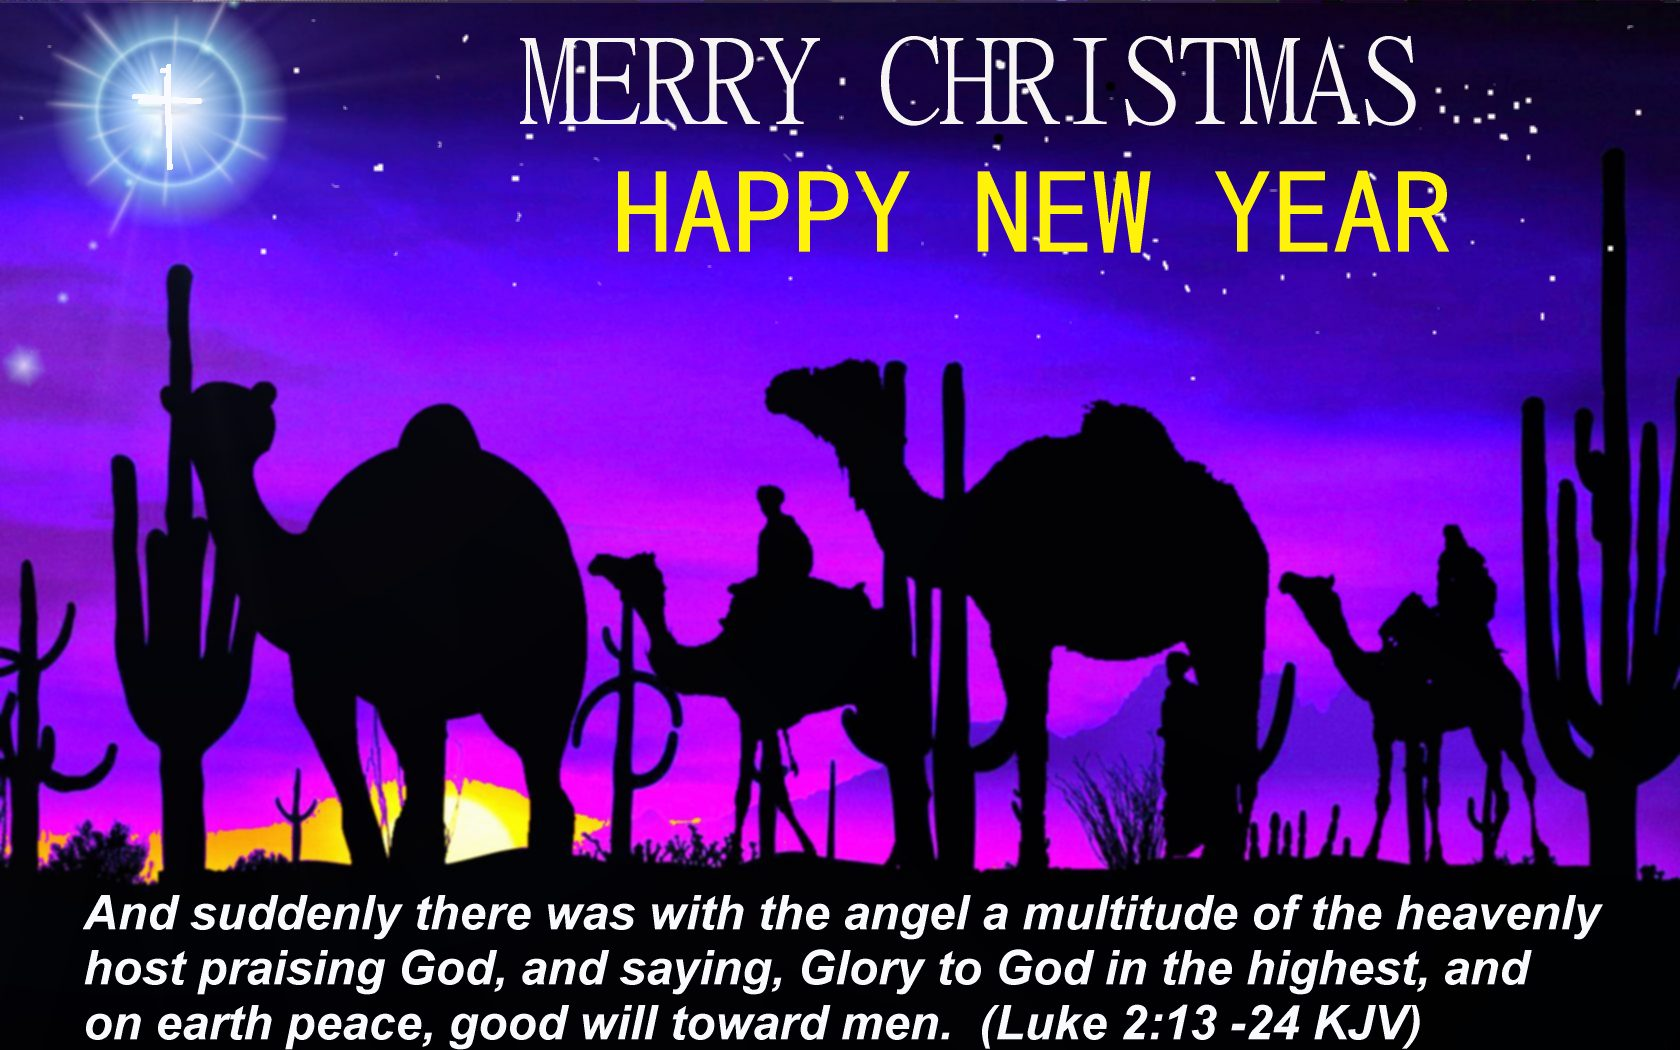 merry christmas and happy new year religious. a very merry christmas amd happy new year and religious